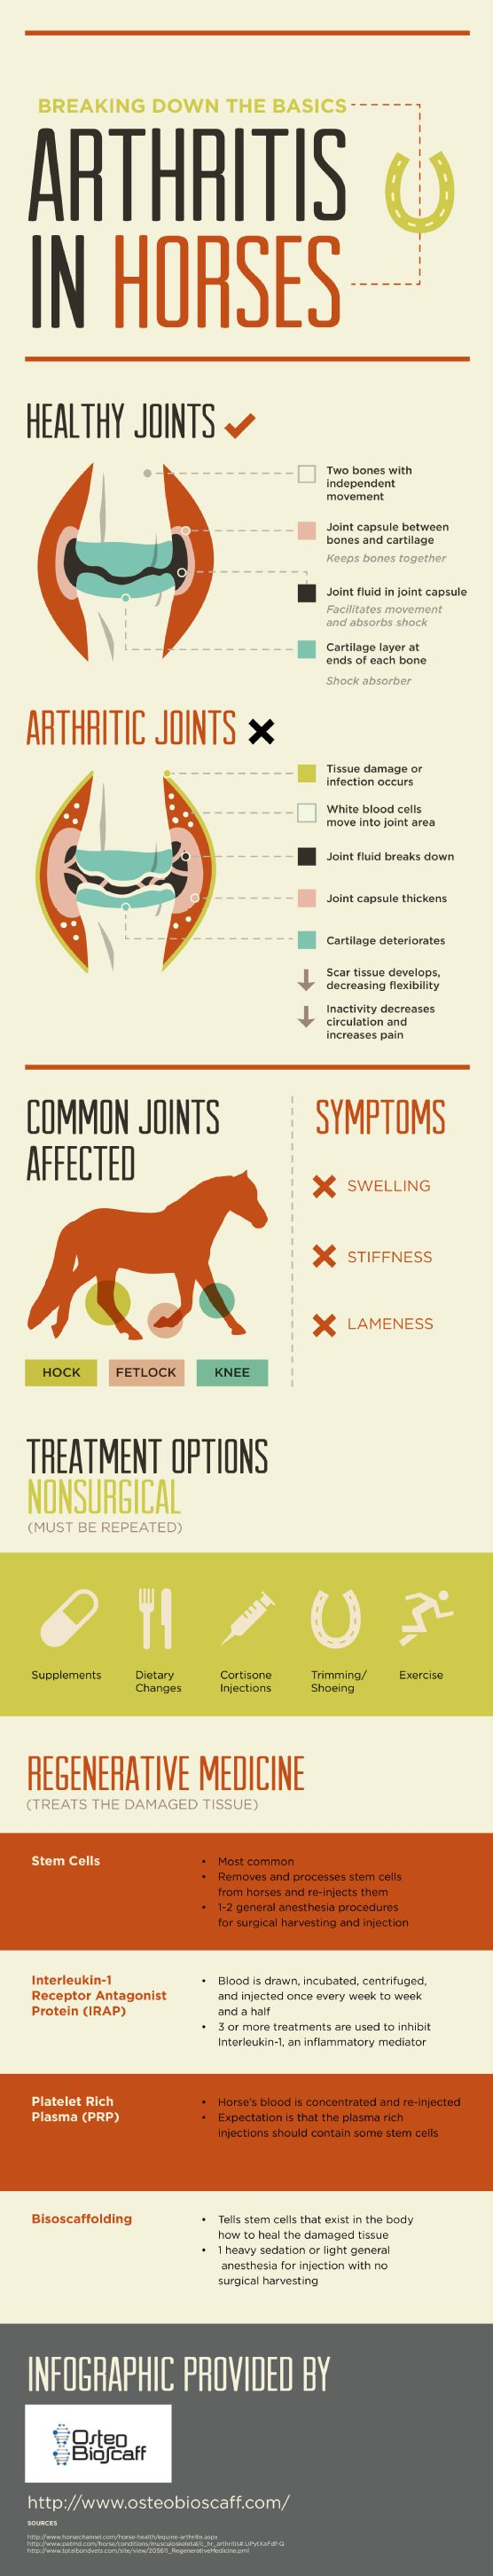 If a horse is suffering from swelling, stiffness, or lameness, he might have equine arthritis. Learn how horses can return to their agile conditions by checking out this infographic about arthritis treatment options. Original source: http://www.osteobioscaff.com/640436/2013/02/06/breaking-down-the-basics-arthritis-in-horses---infographic.html